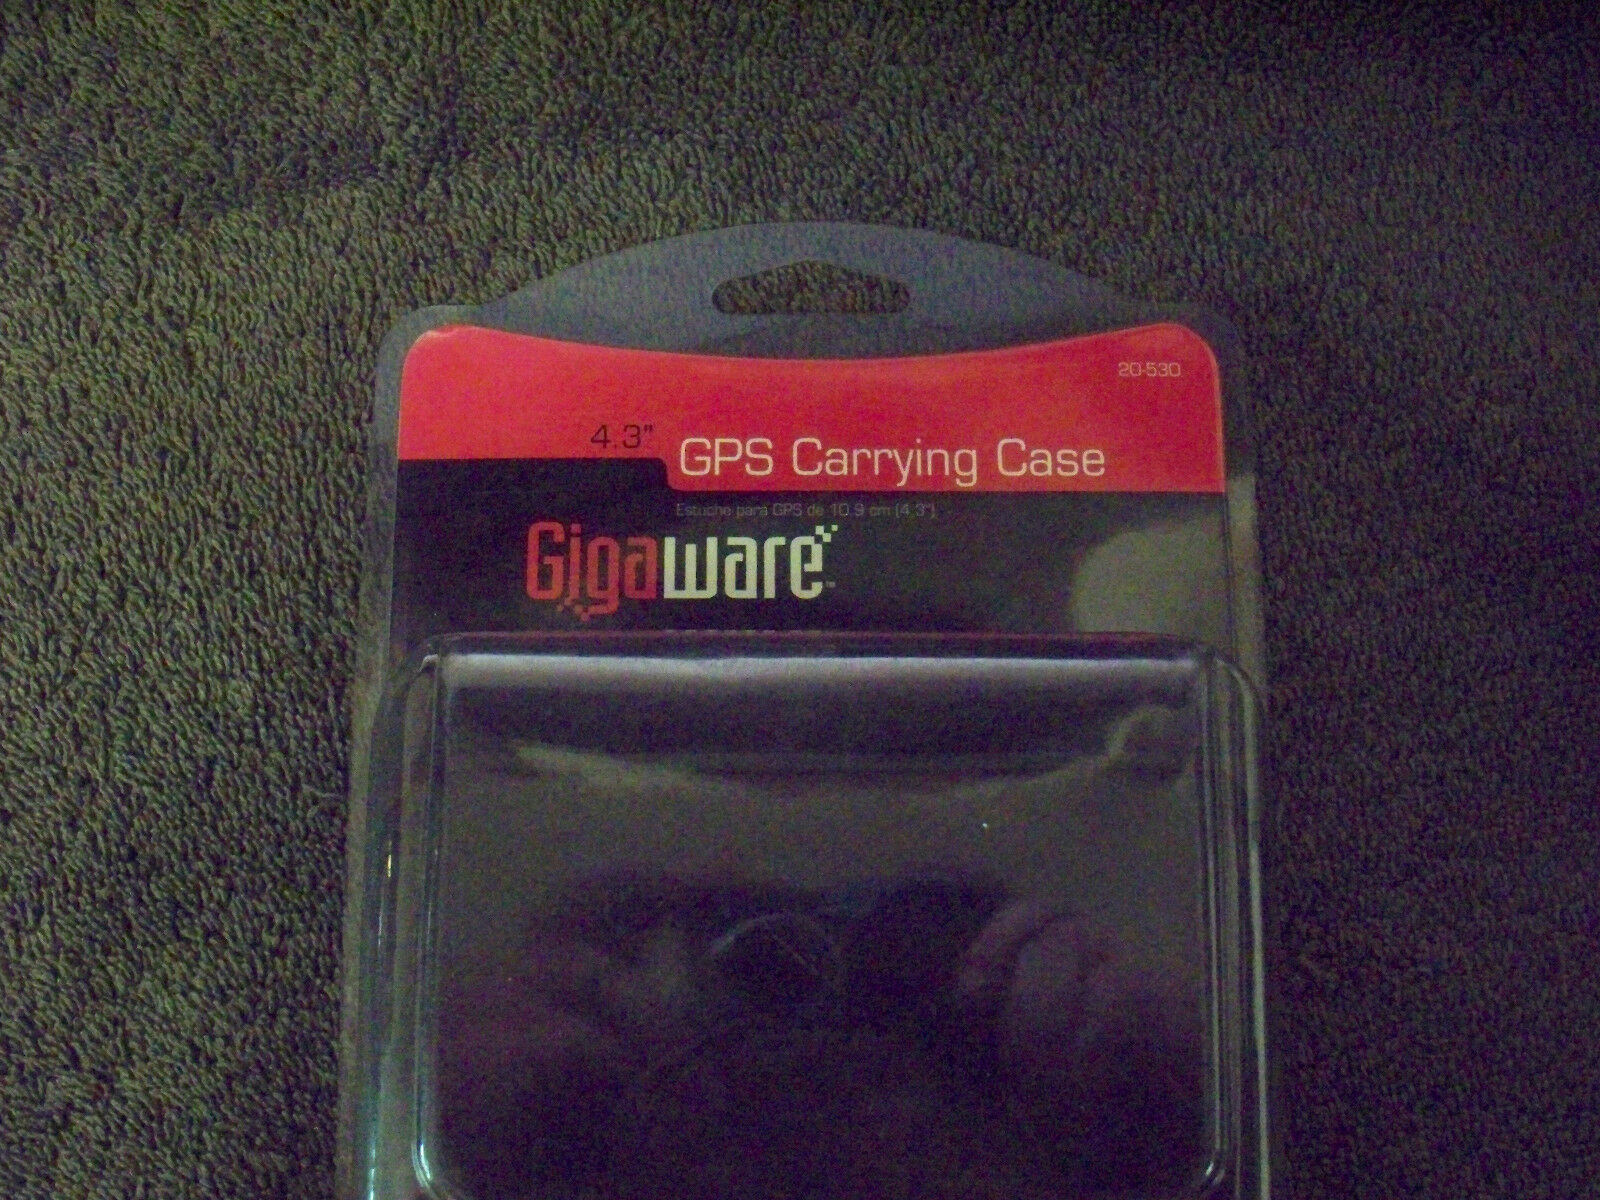 NEW GIGAWARE GPS Carrying Case  20-530